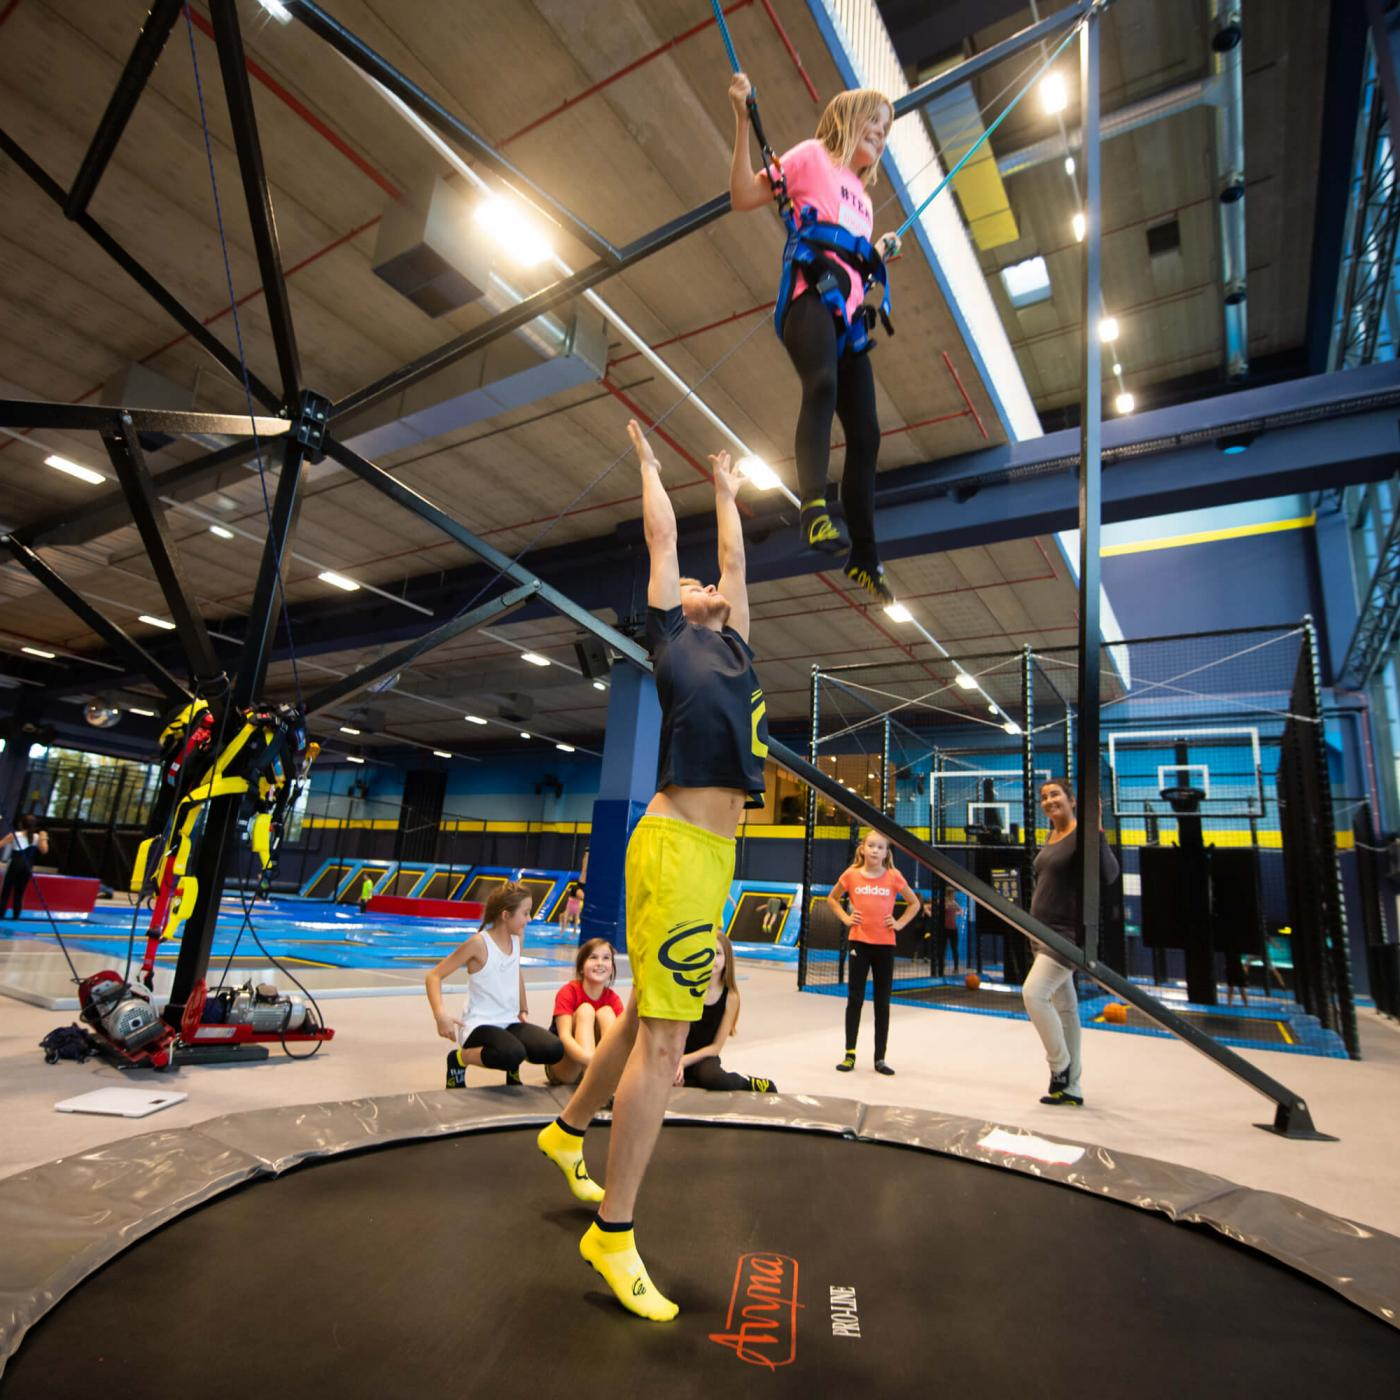 Trampolin springen im Flip Lab Center in Graz.